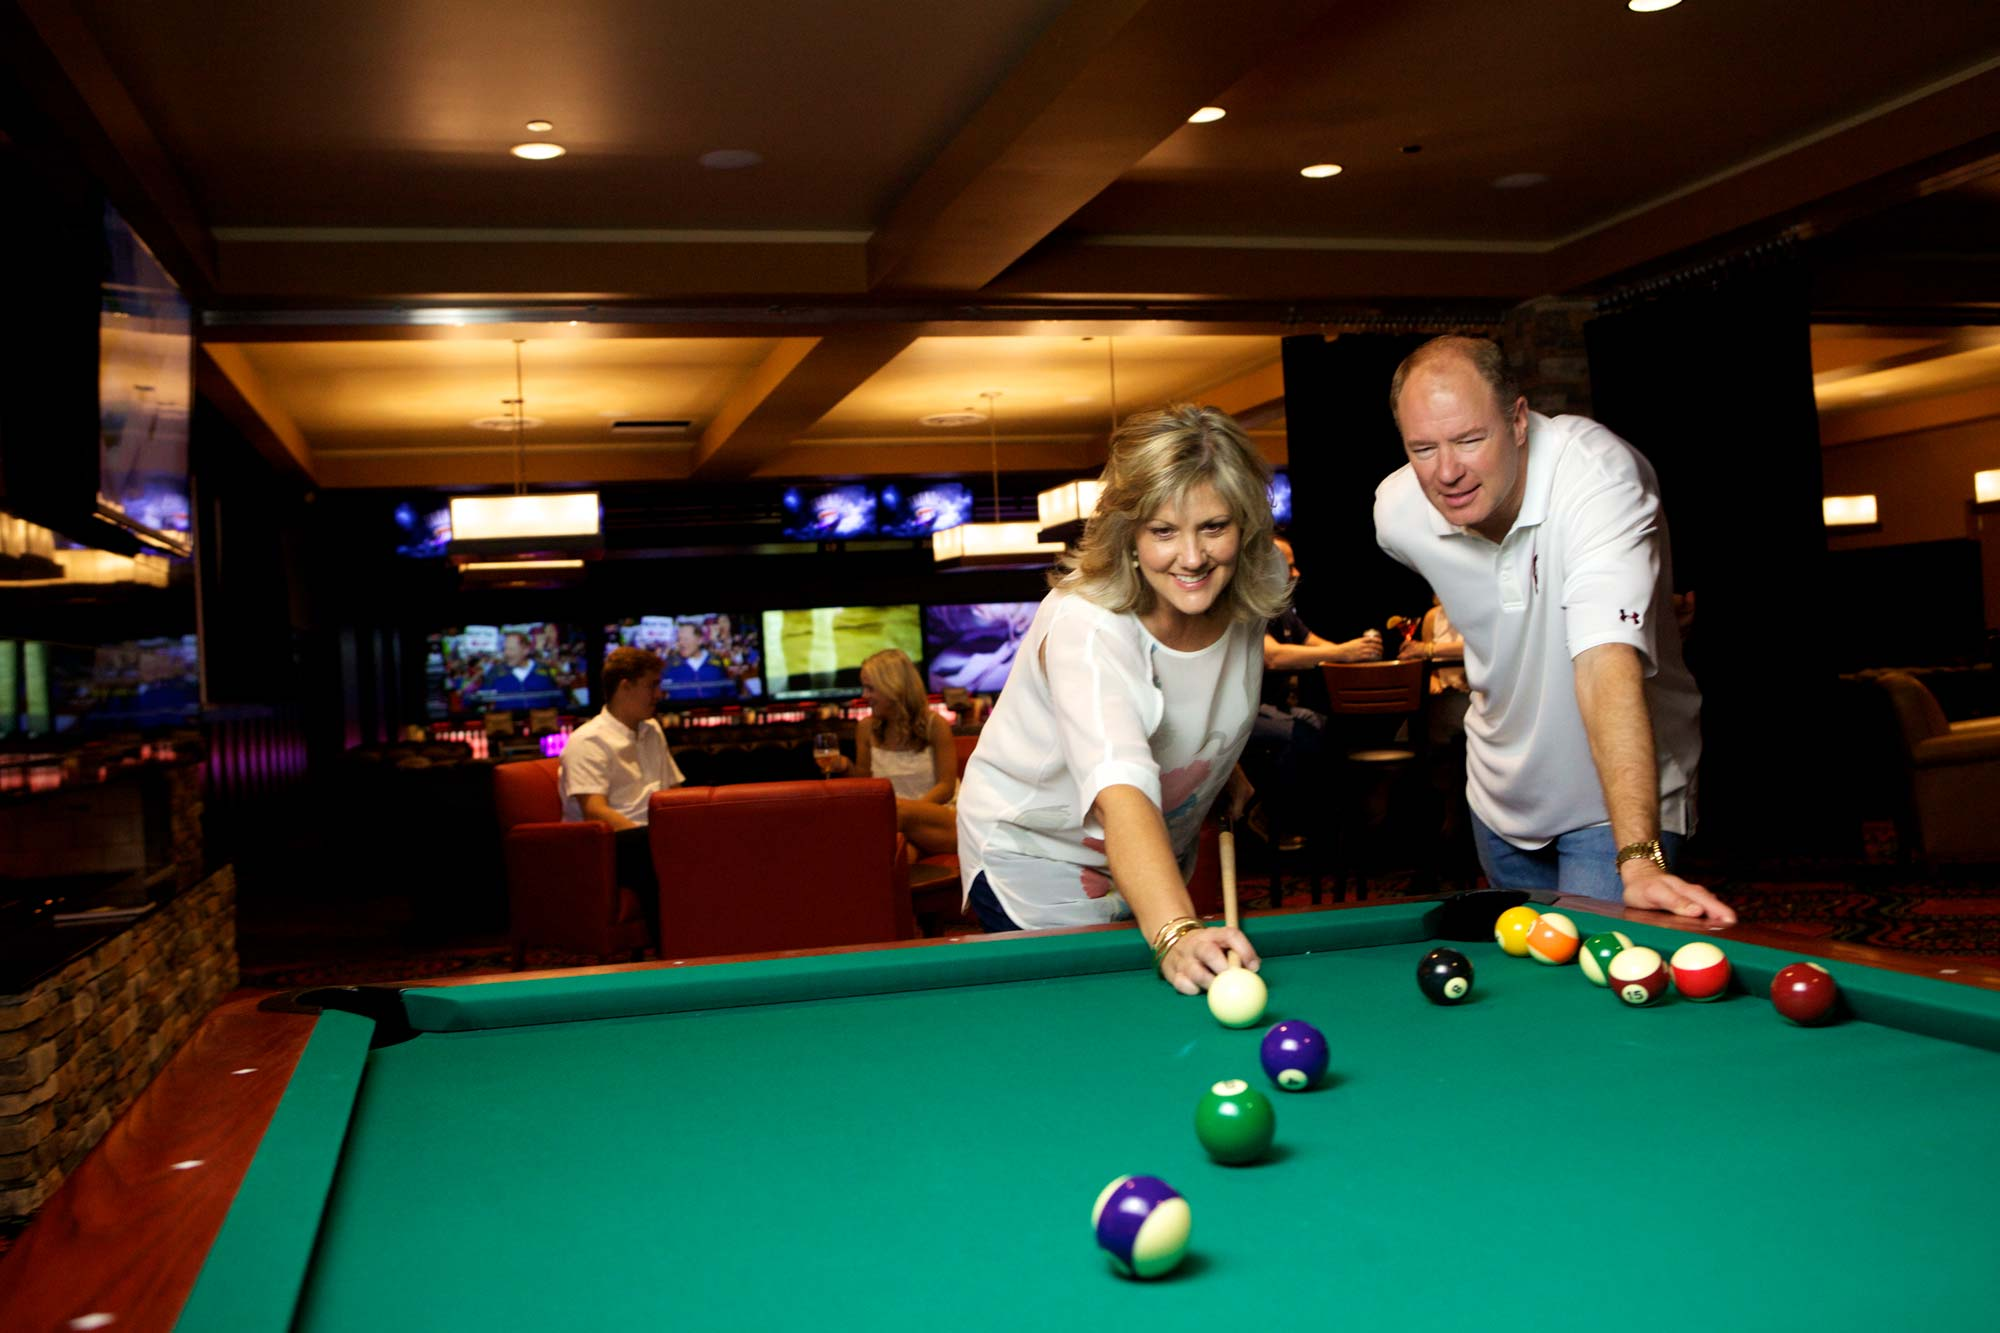 Copy of Pool tables, drinks, and bowling